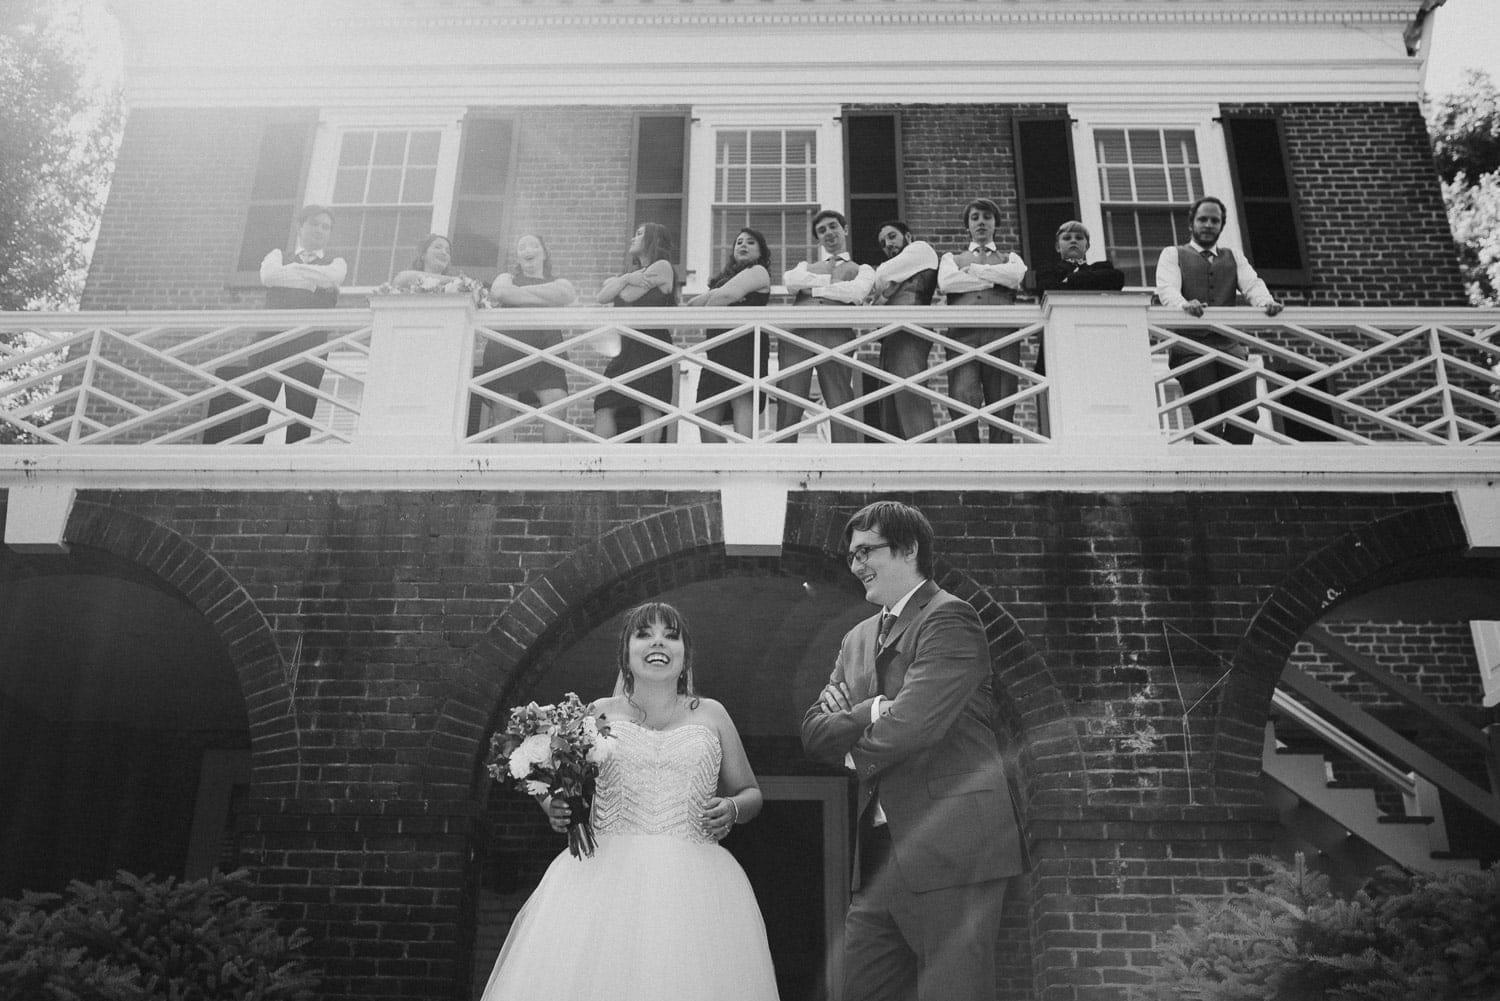 The bride and groom are laughing. They are standing in front of a brick building at the University of Virginia.